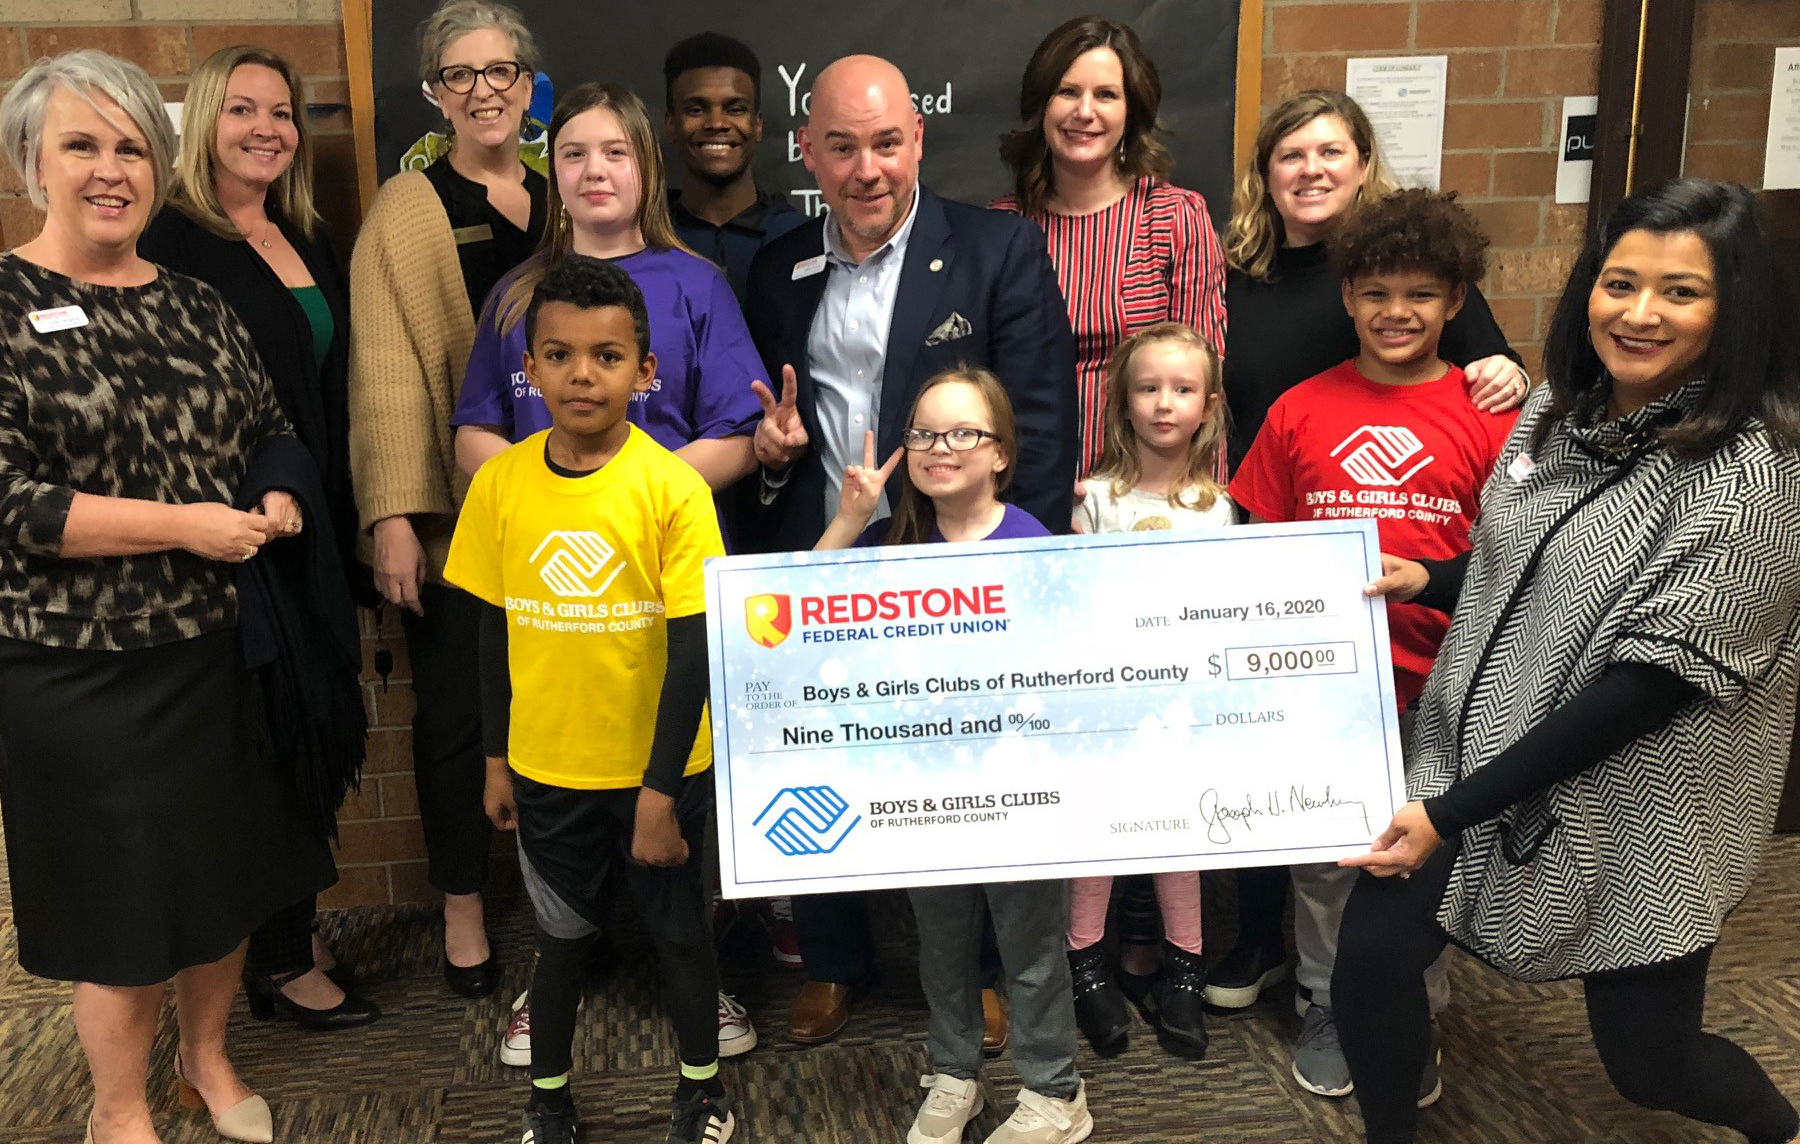 Christmas celebrations continued at Redstone Federal Credit Union® last week when the organization presented checks for $9,000 to two children's charities as part of its Letters to Santa campaign.